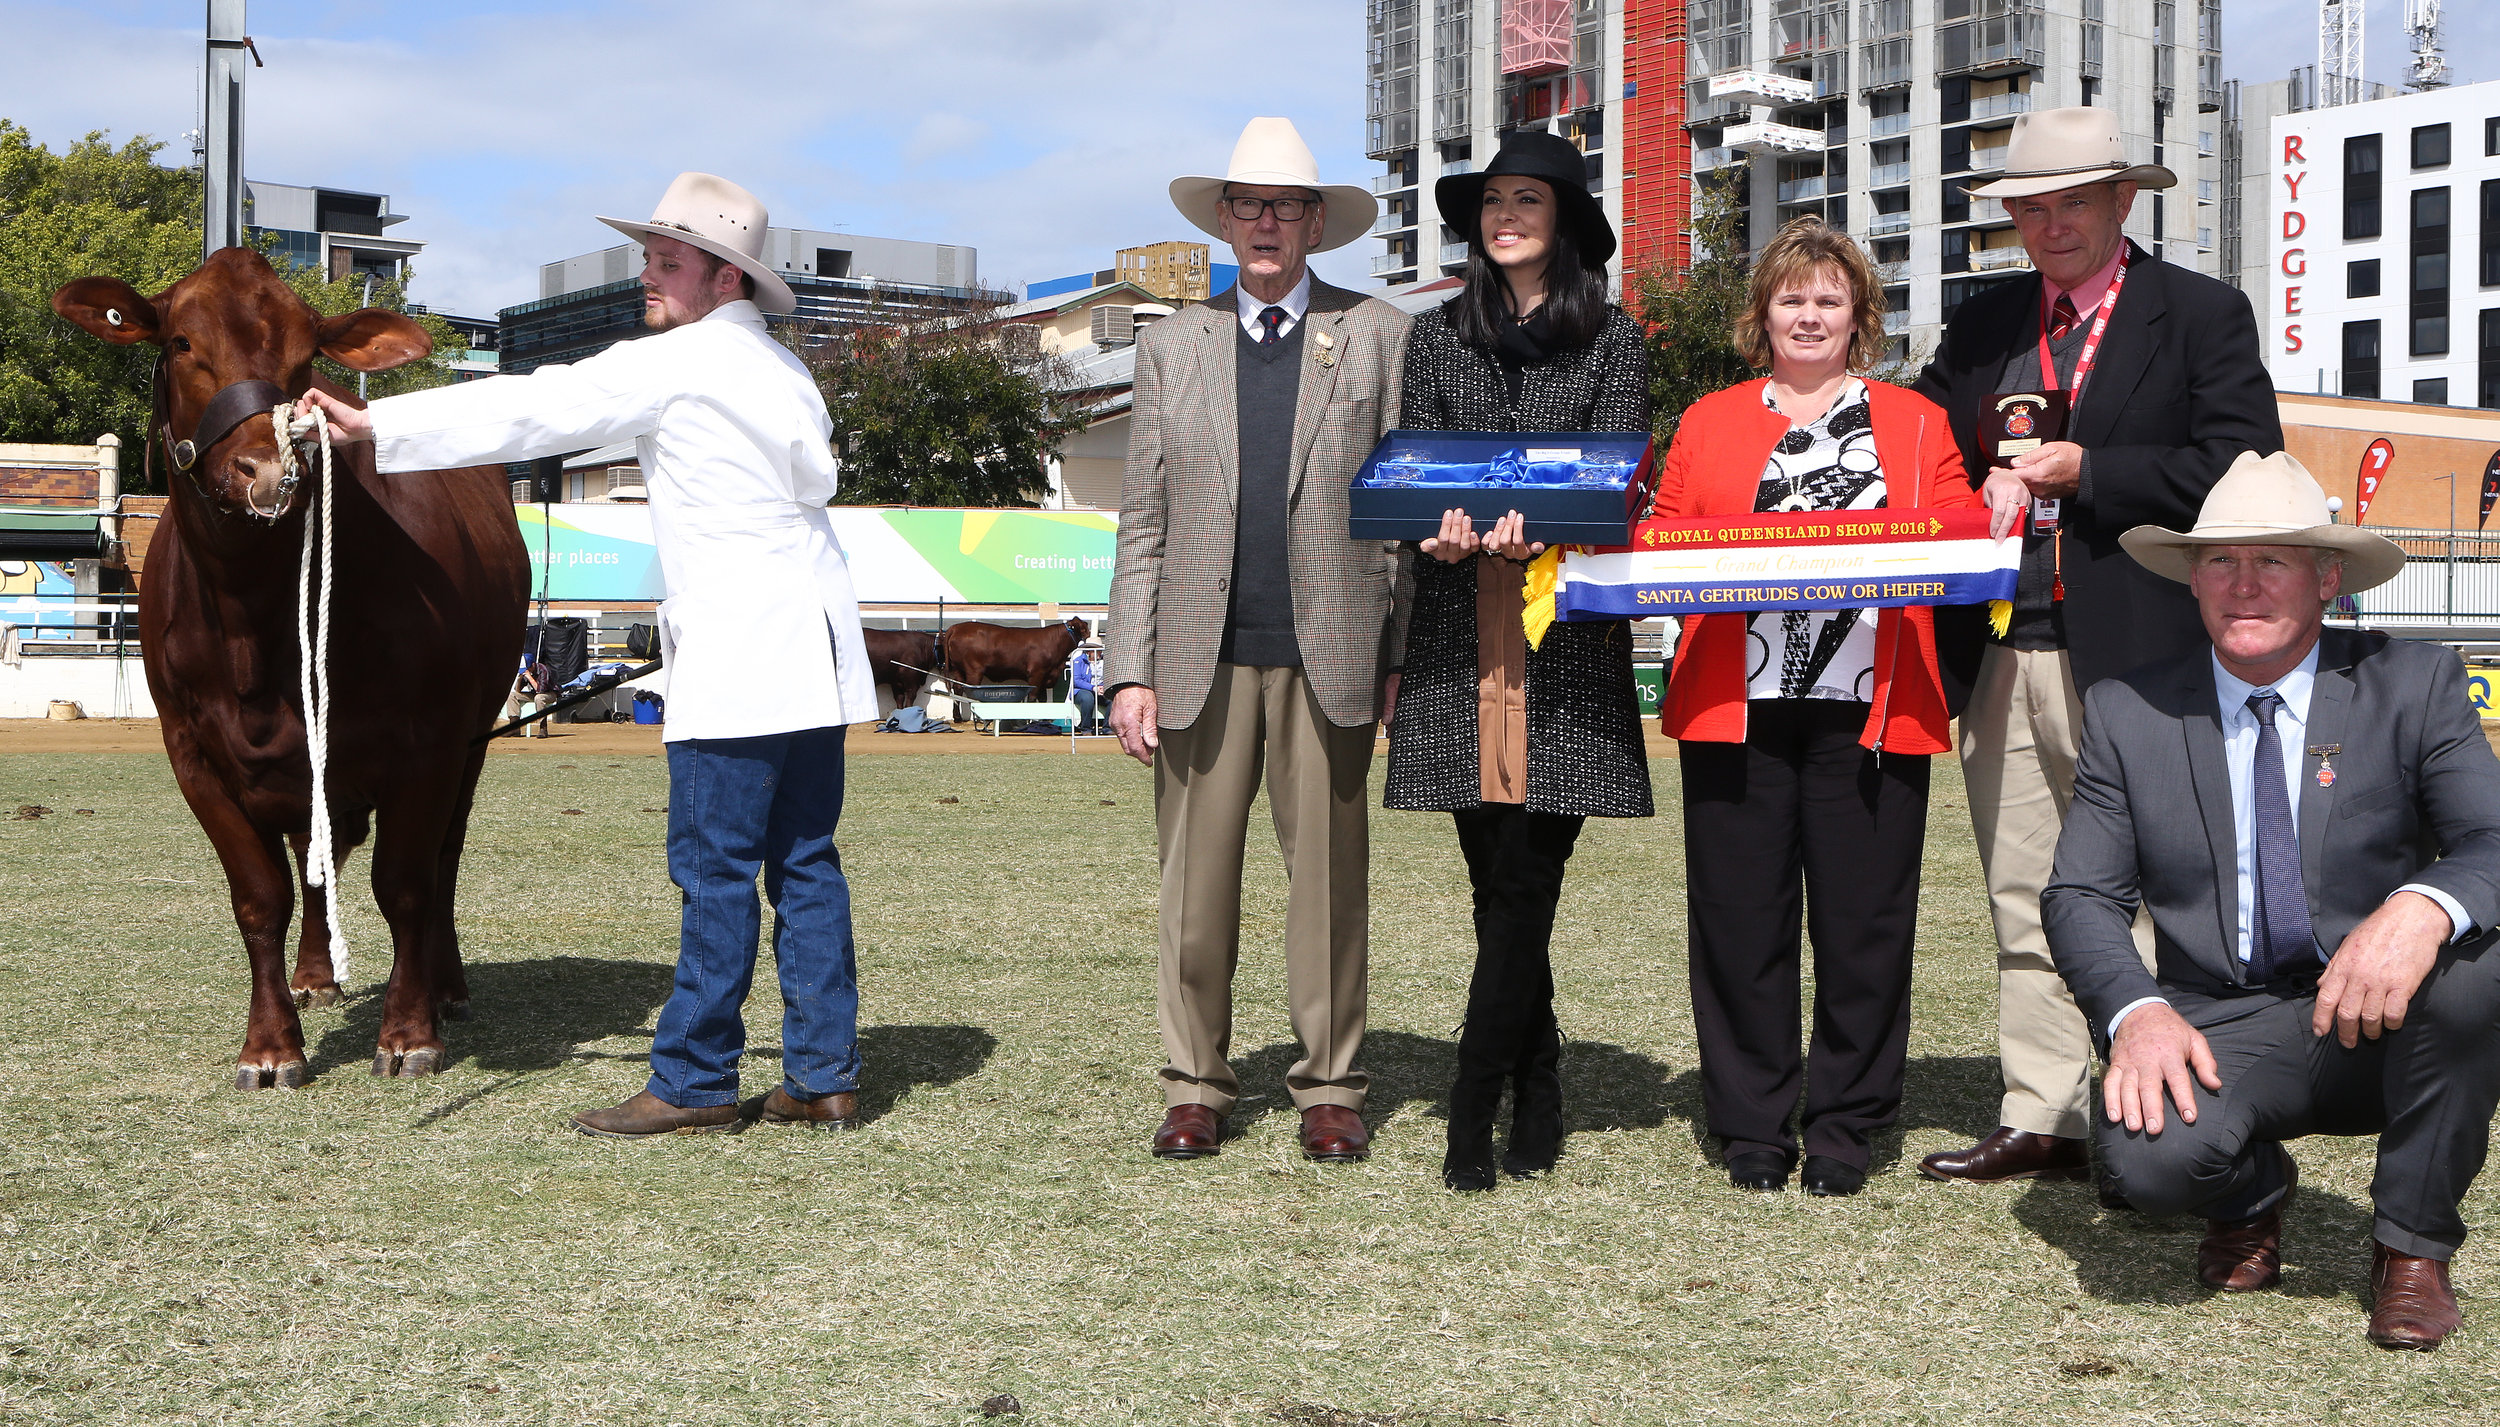 Senior and Grand Champion Cow, Yarrawonga Escort K425 was awarded The Big S Group Trophy presented by Felicity Sham and the Elders Shield of Excellence presented by Blake Munro with Alastair and Fiona Bassingthwaighte and Judge, Ivan Price.